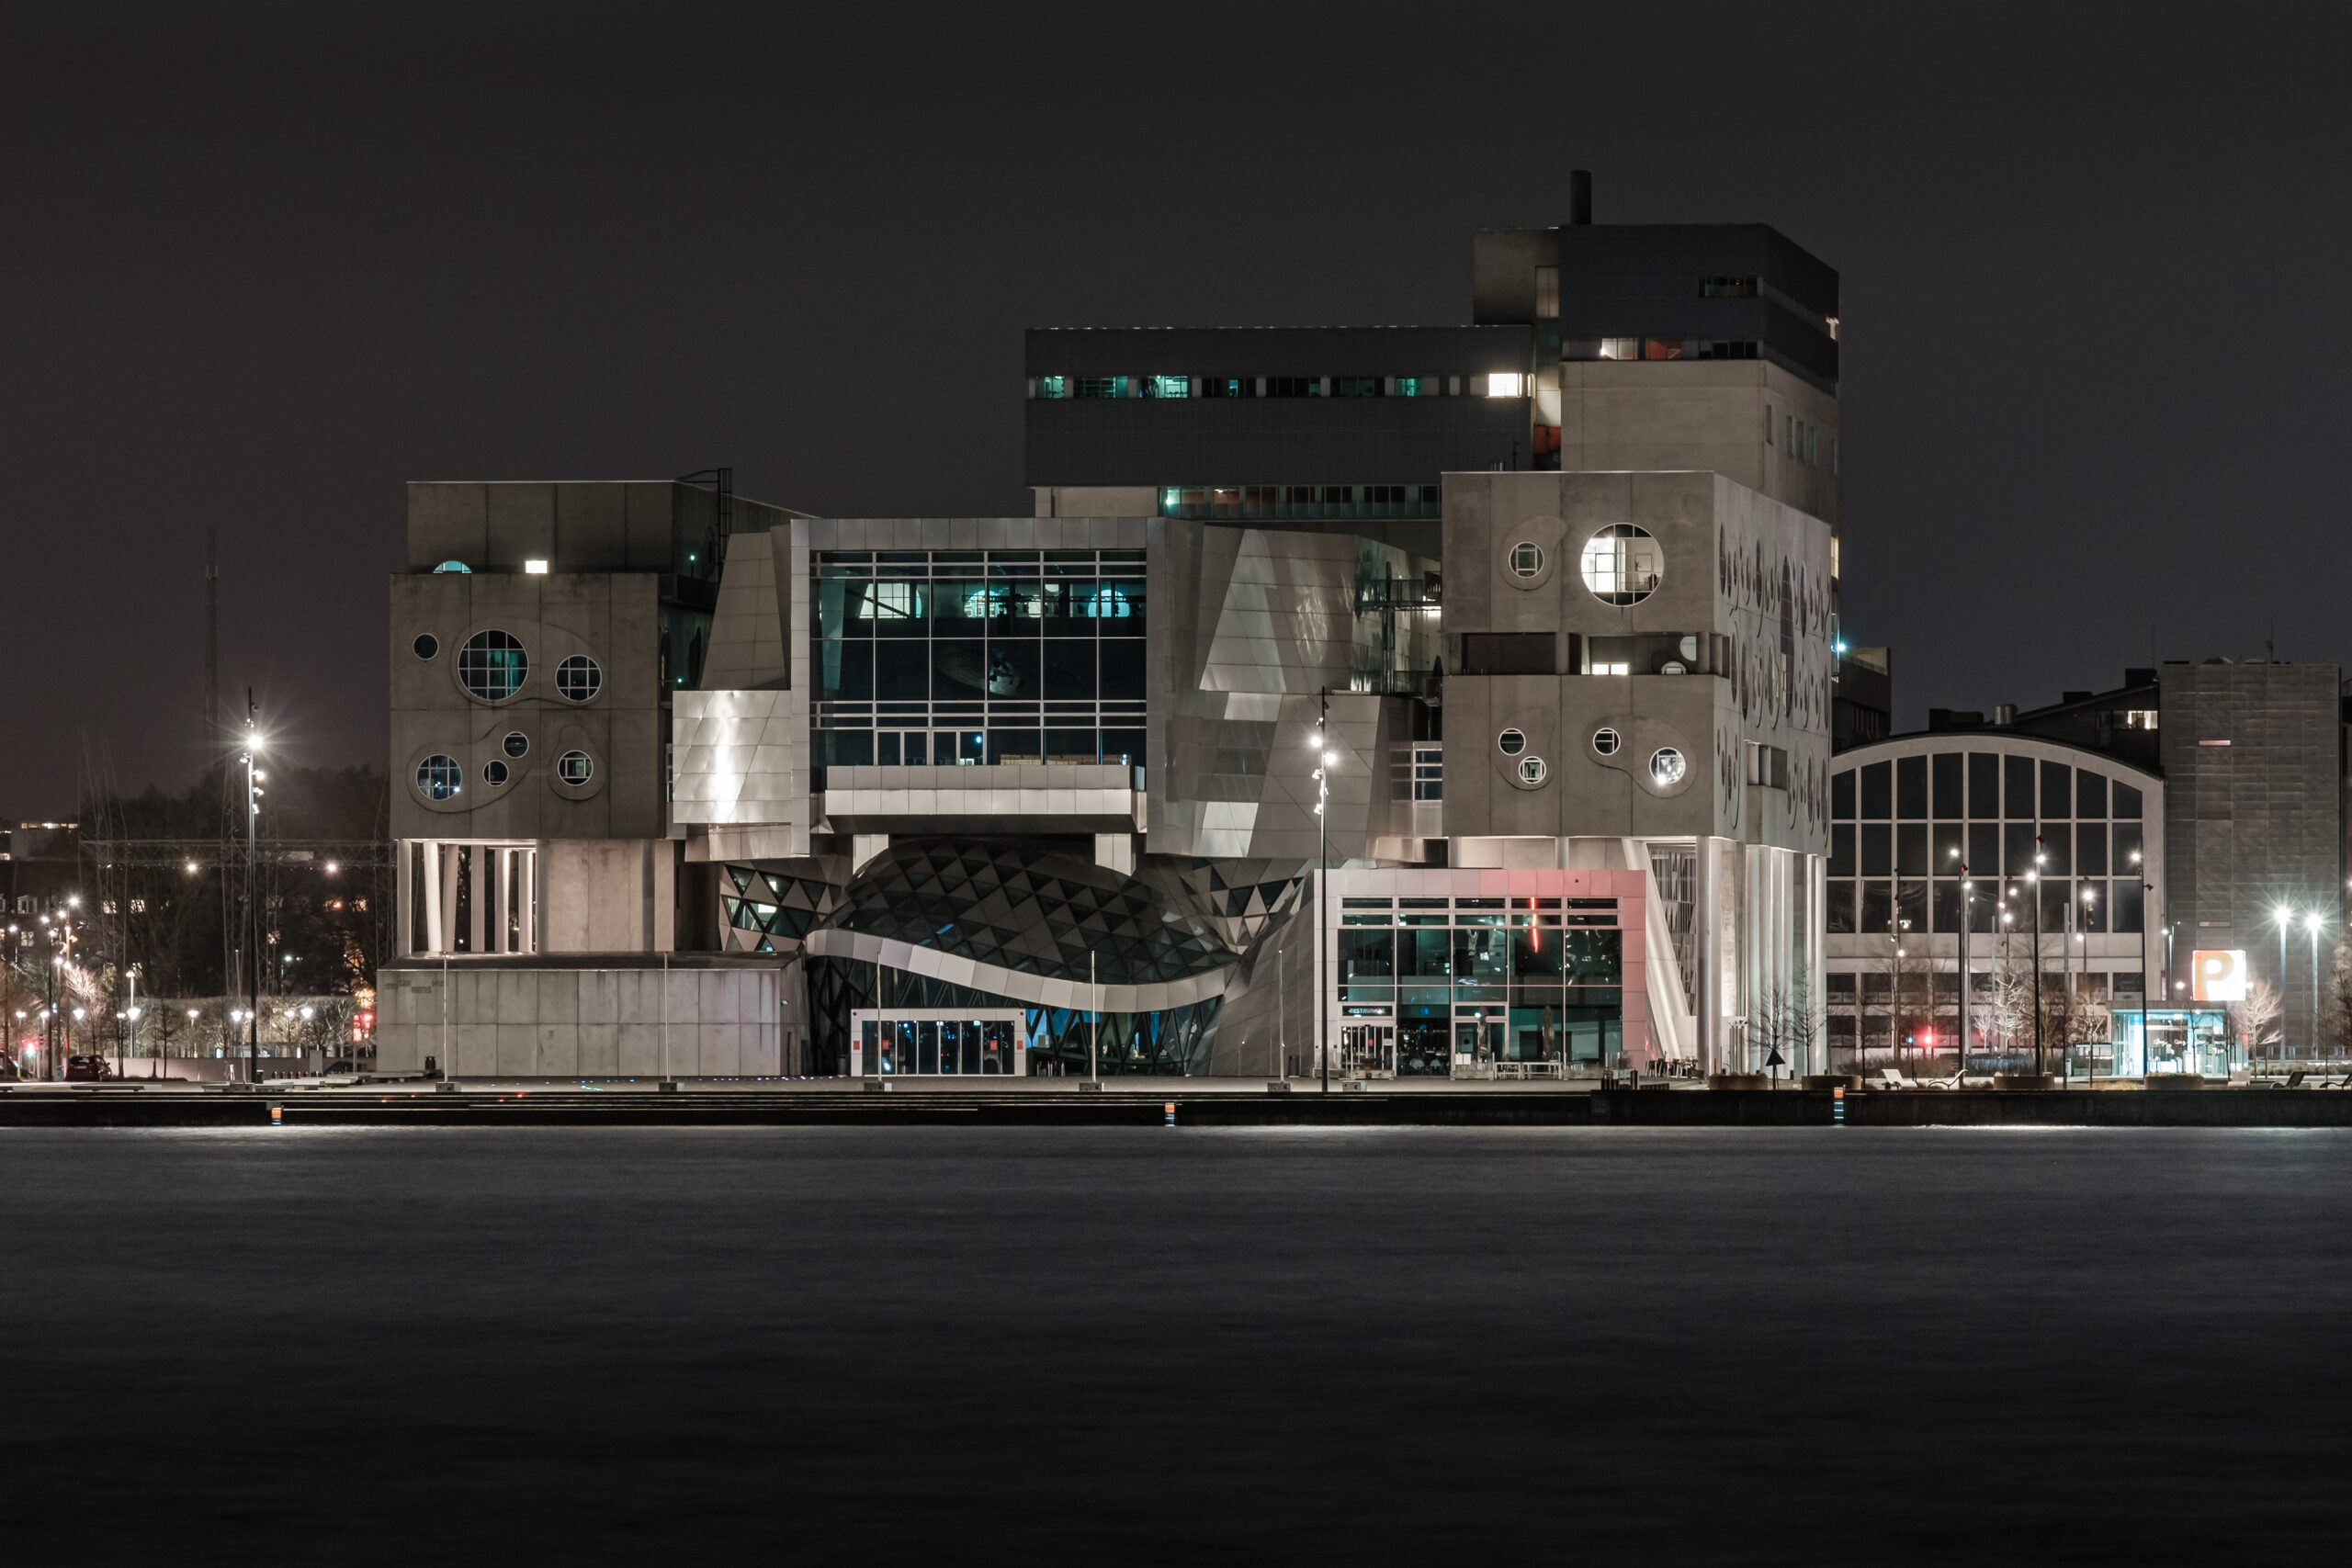 Musikkens Hus (House of Music) at night